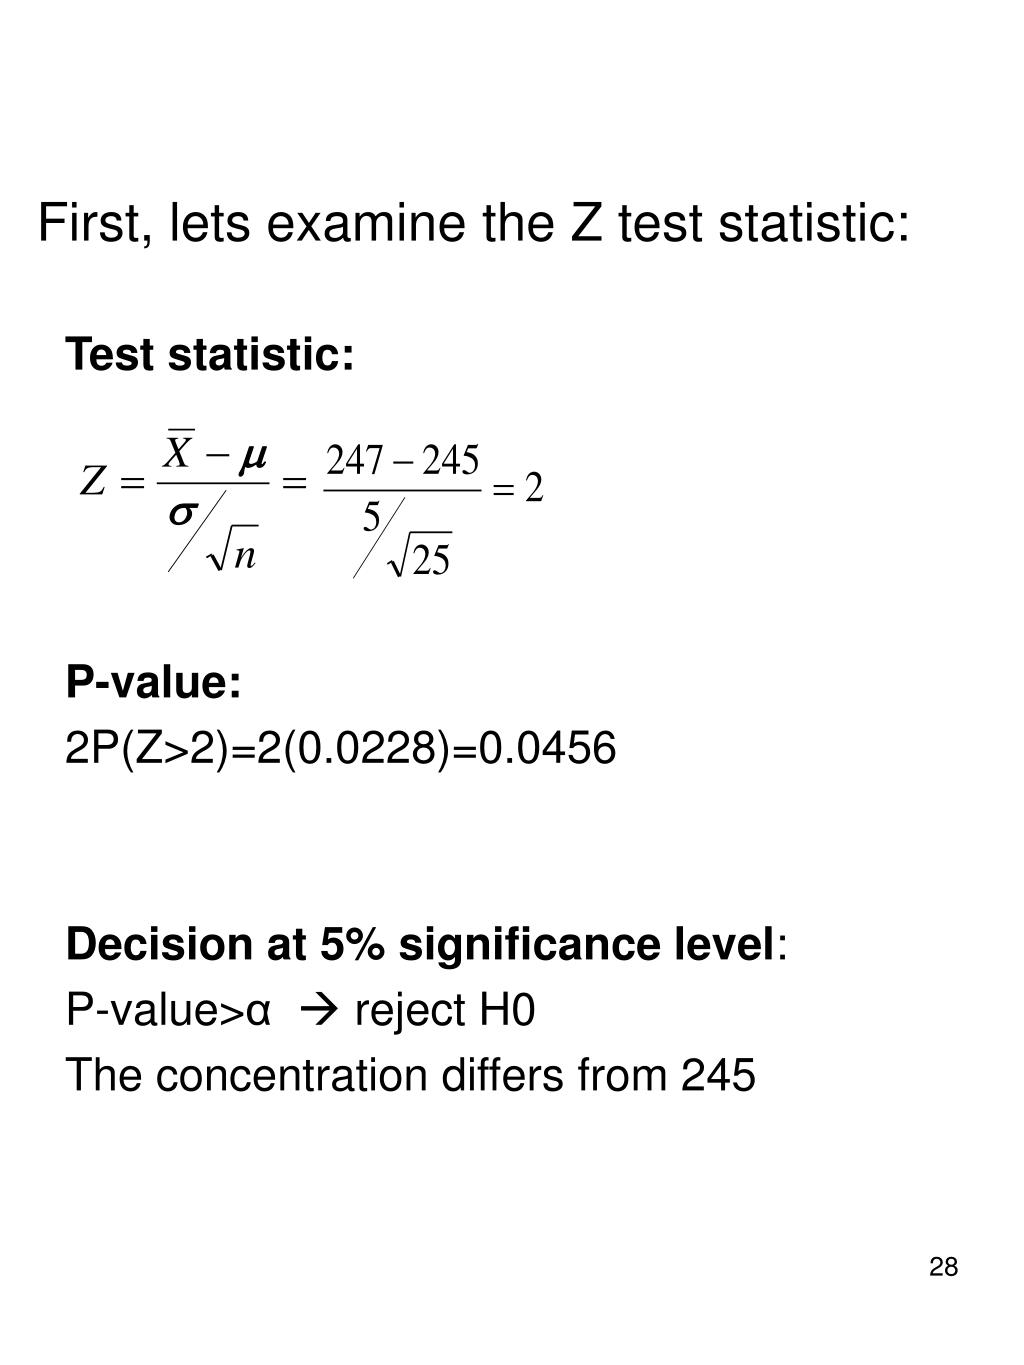 First, lets examine the Z test statistic: